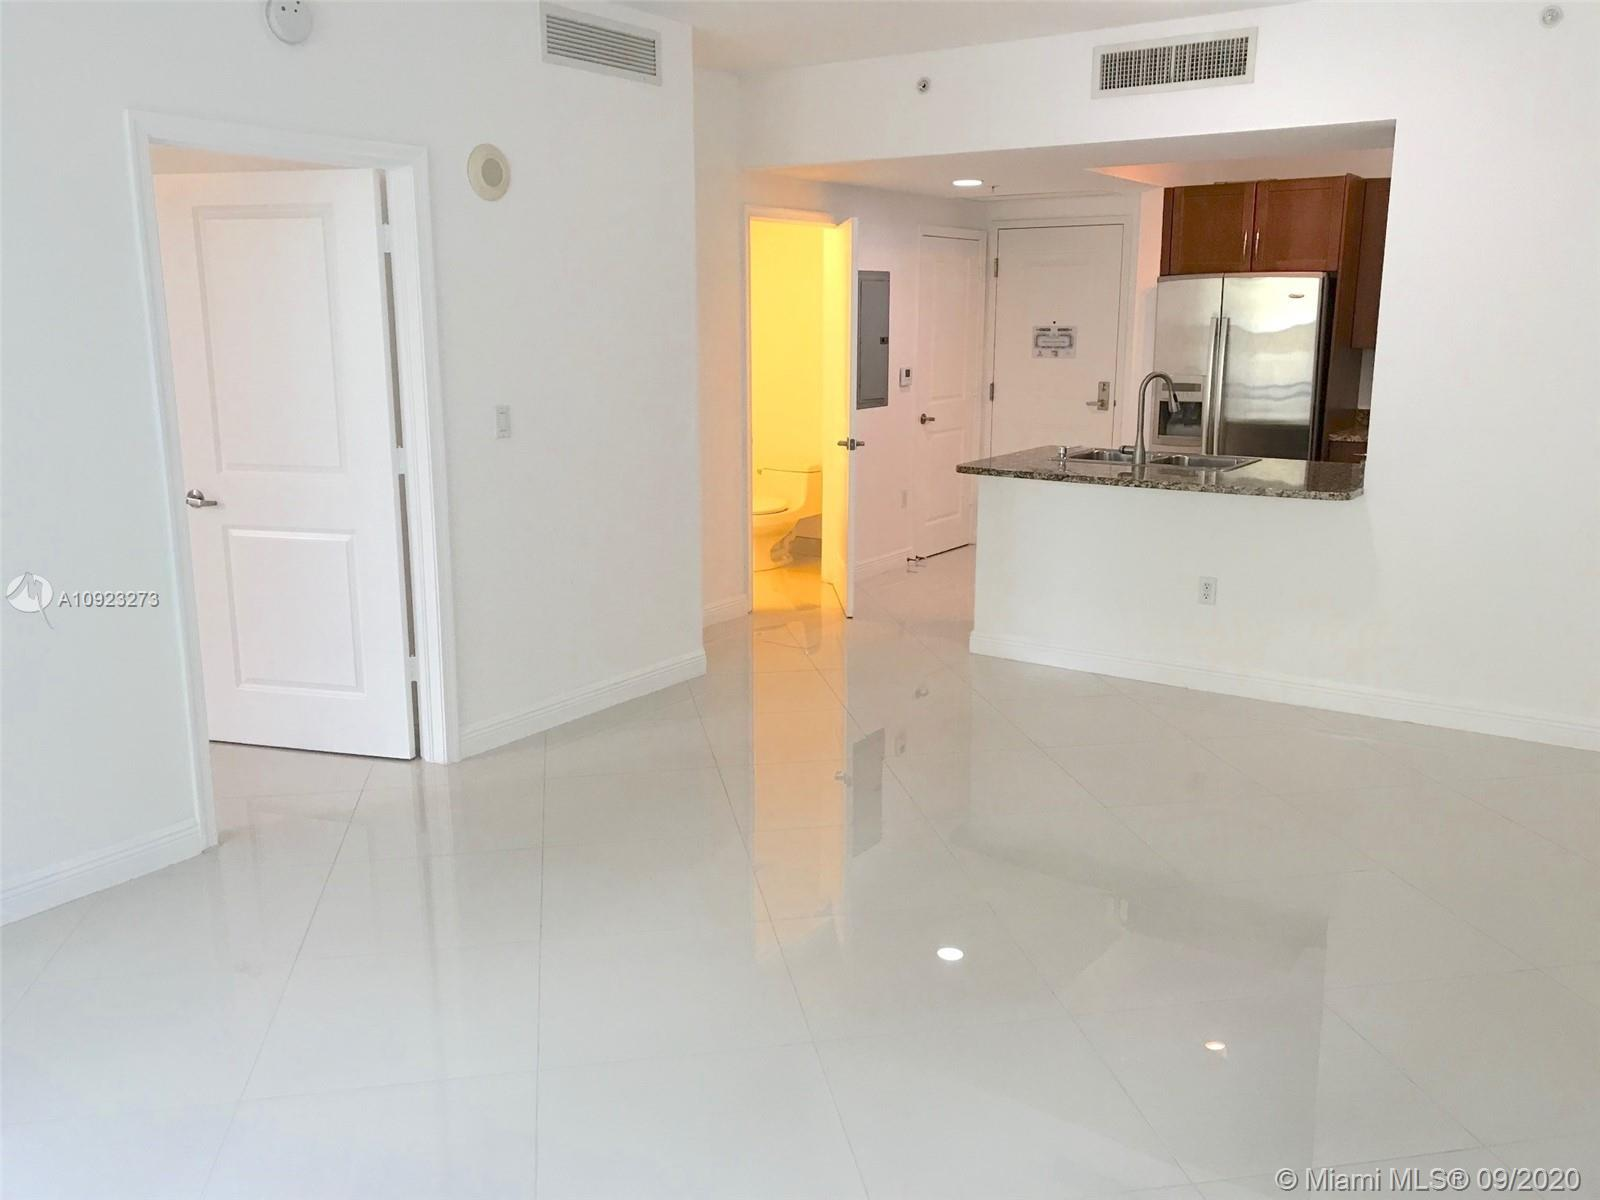 Beautiful and bright 835sf 1bed/1.5bath . . . Brand new shining porcelain flooring throughout! Move-